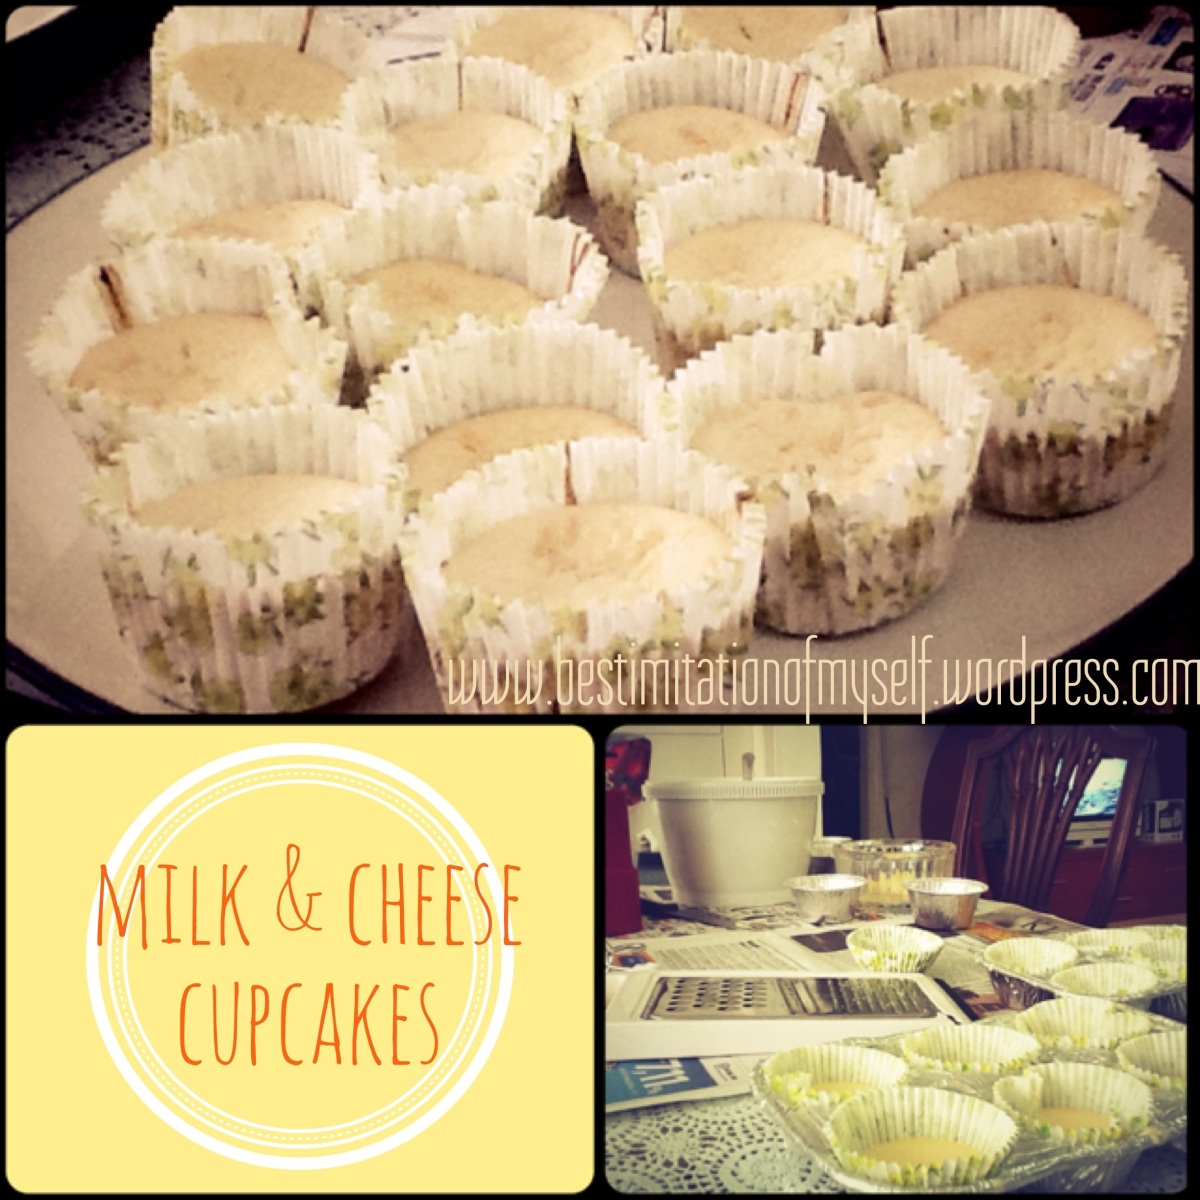 (LatePost) Milk & Cheese Cupcakes